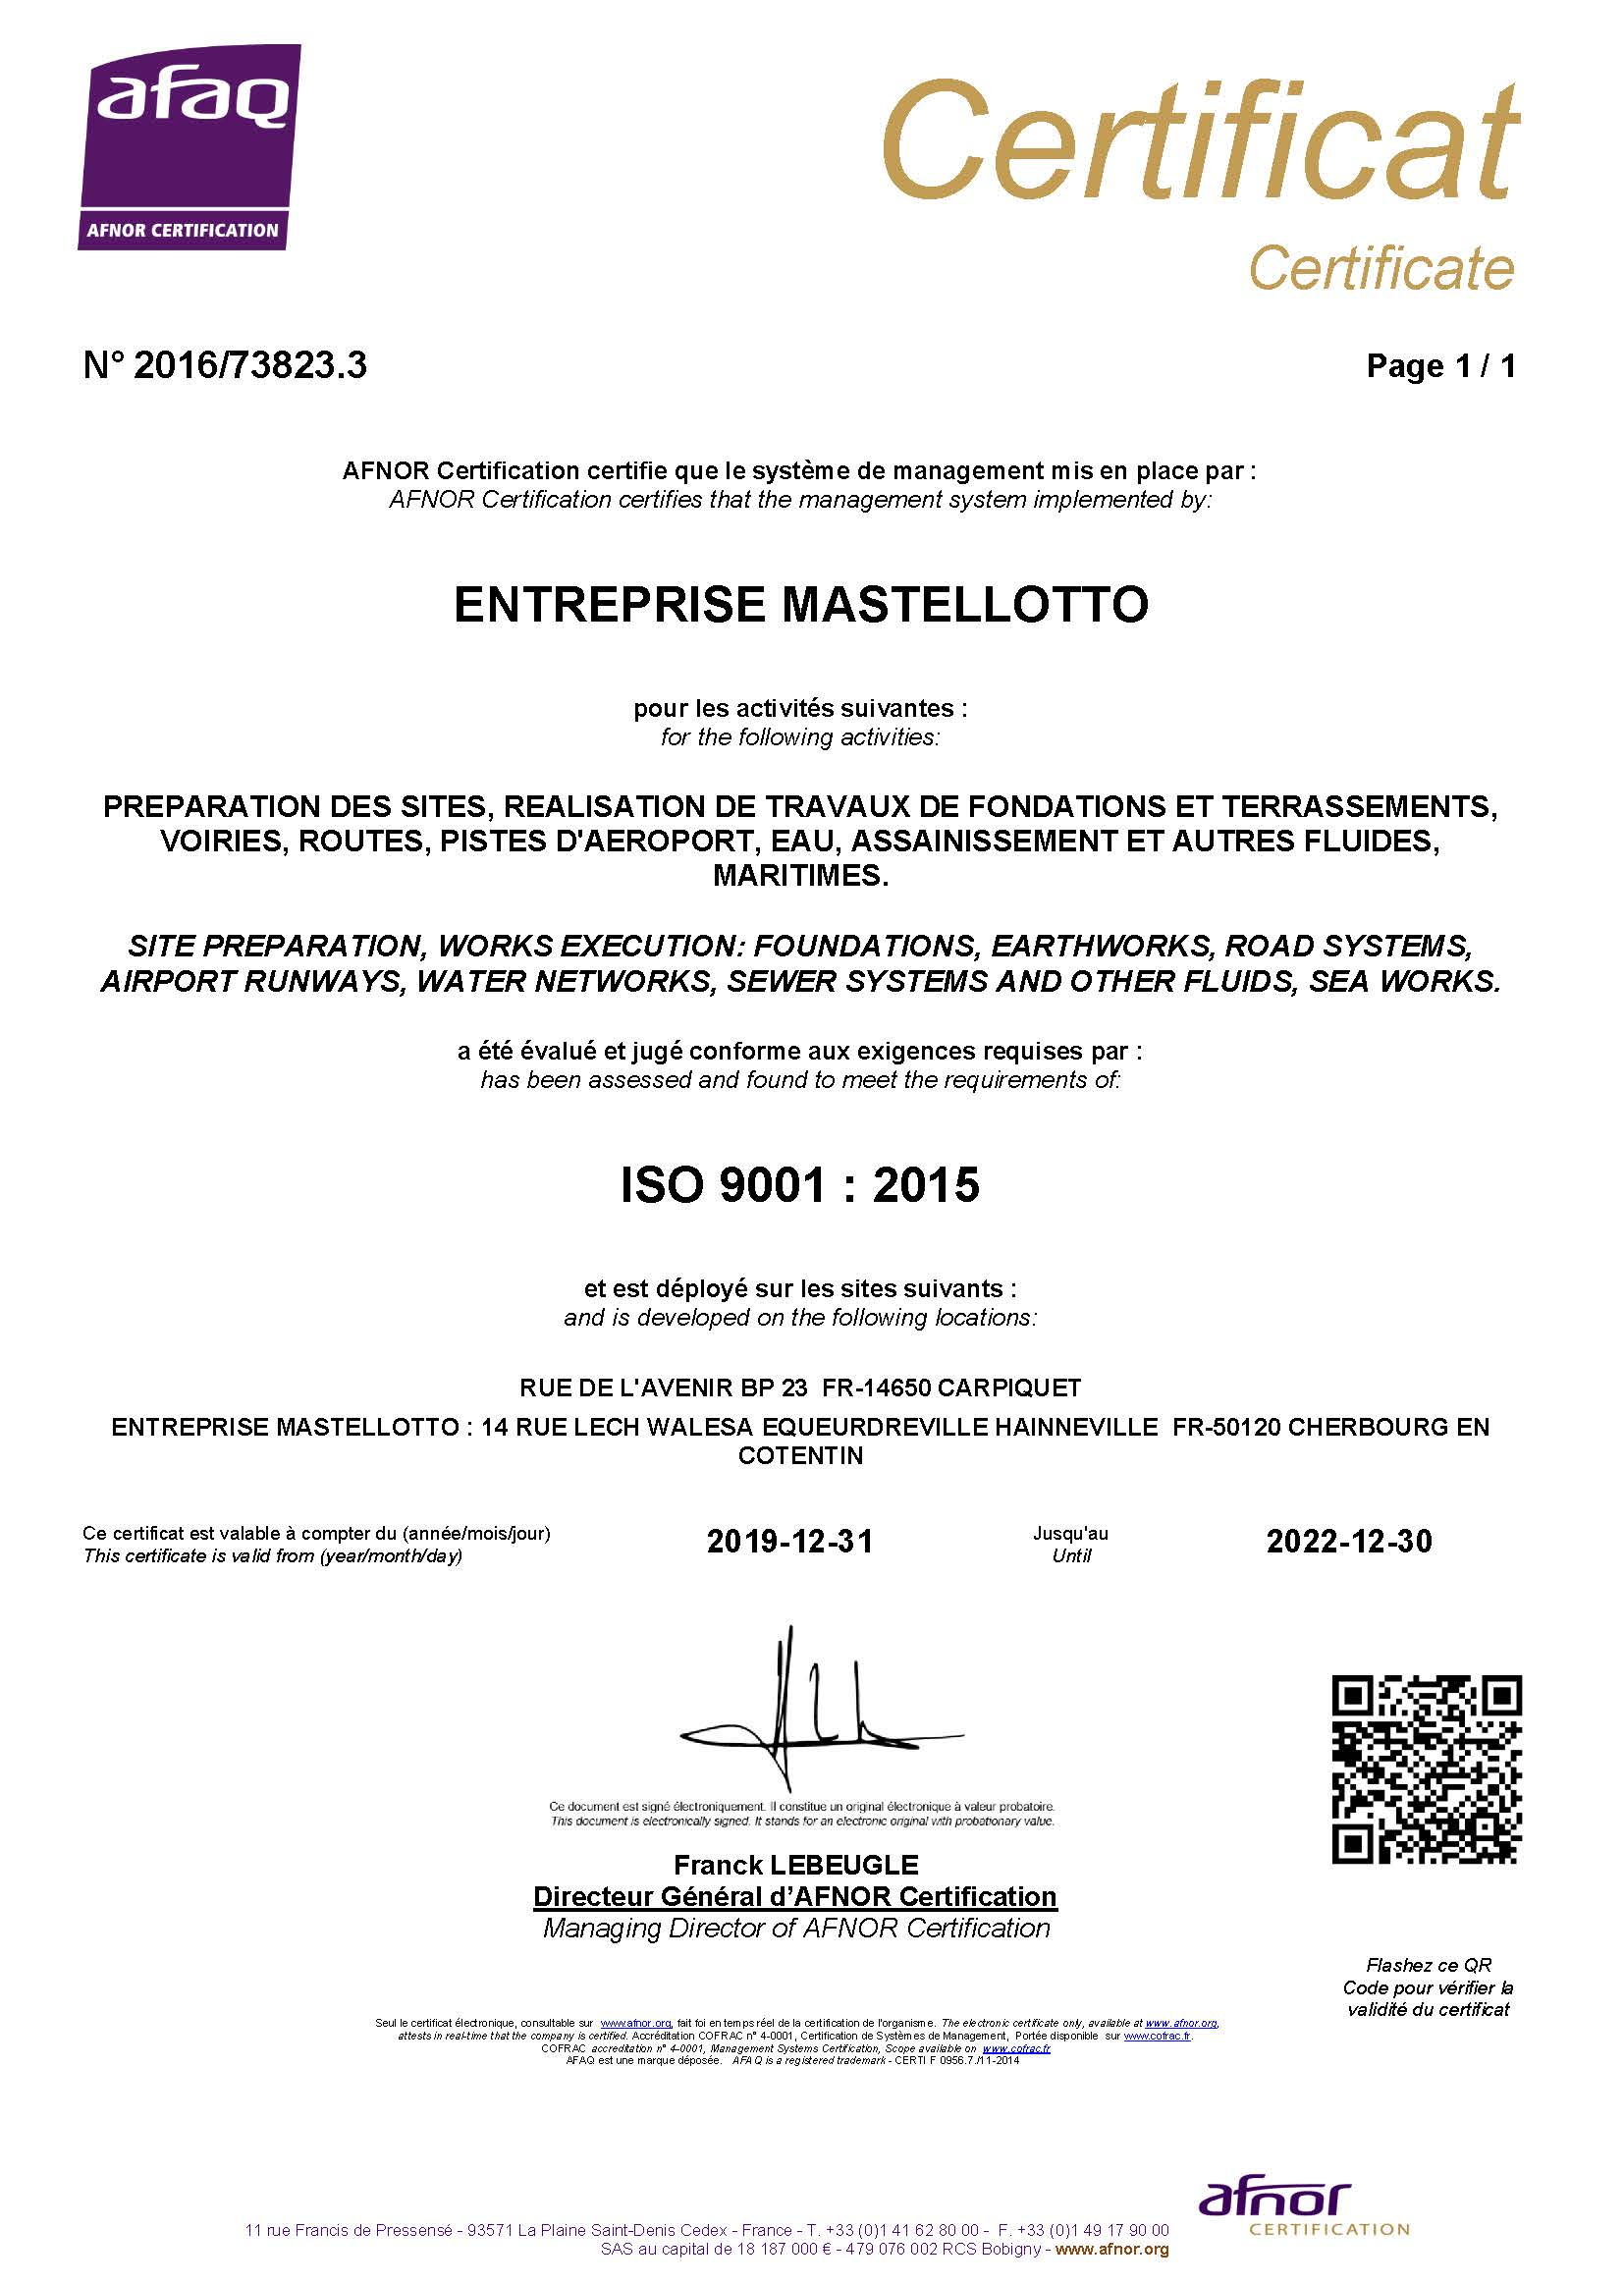 Preview Certificat ISO 9001 2020-2022